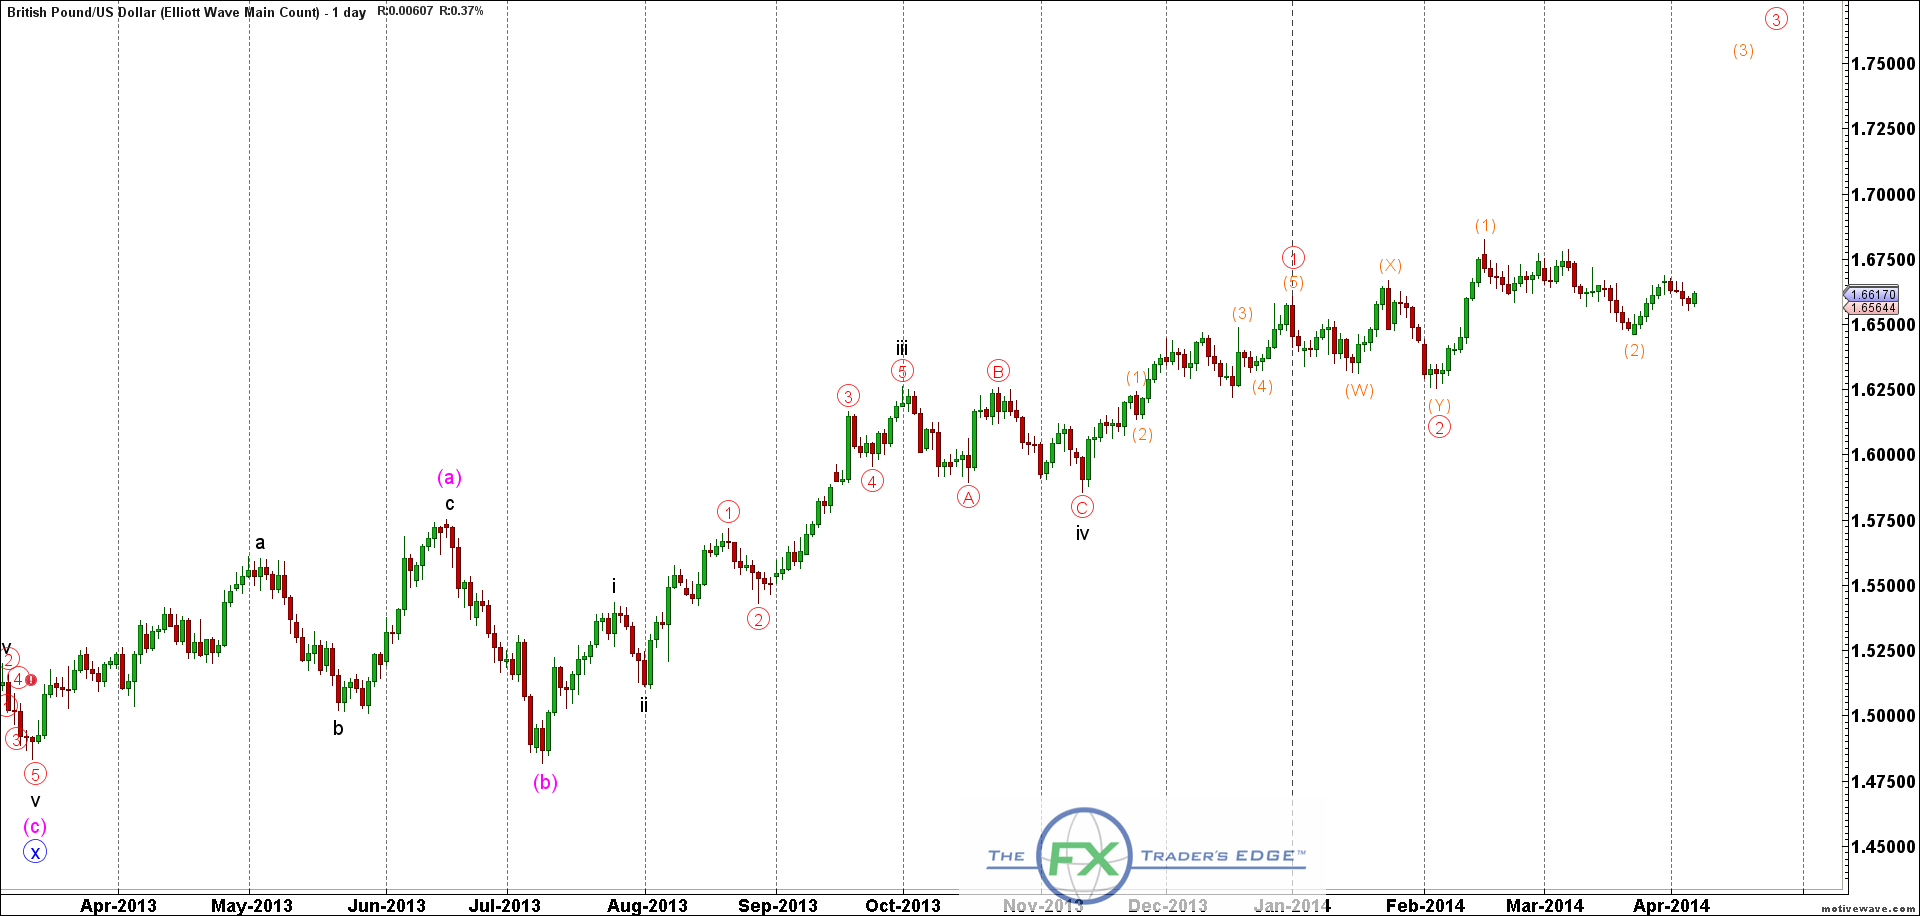 GBPUSD-Elliott-Wave-Main-Count-Apr-07-1105-AM-1-day